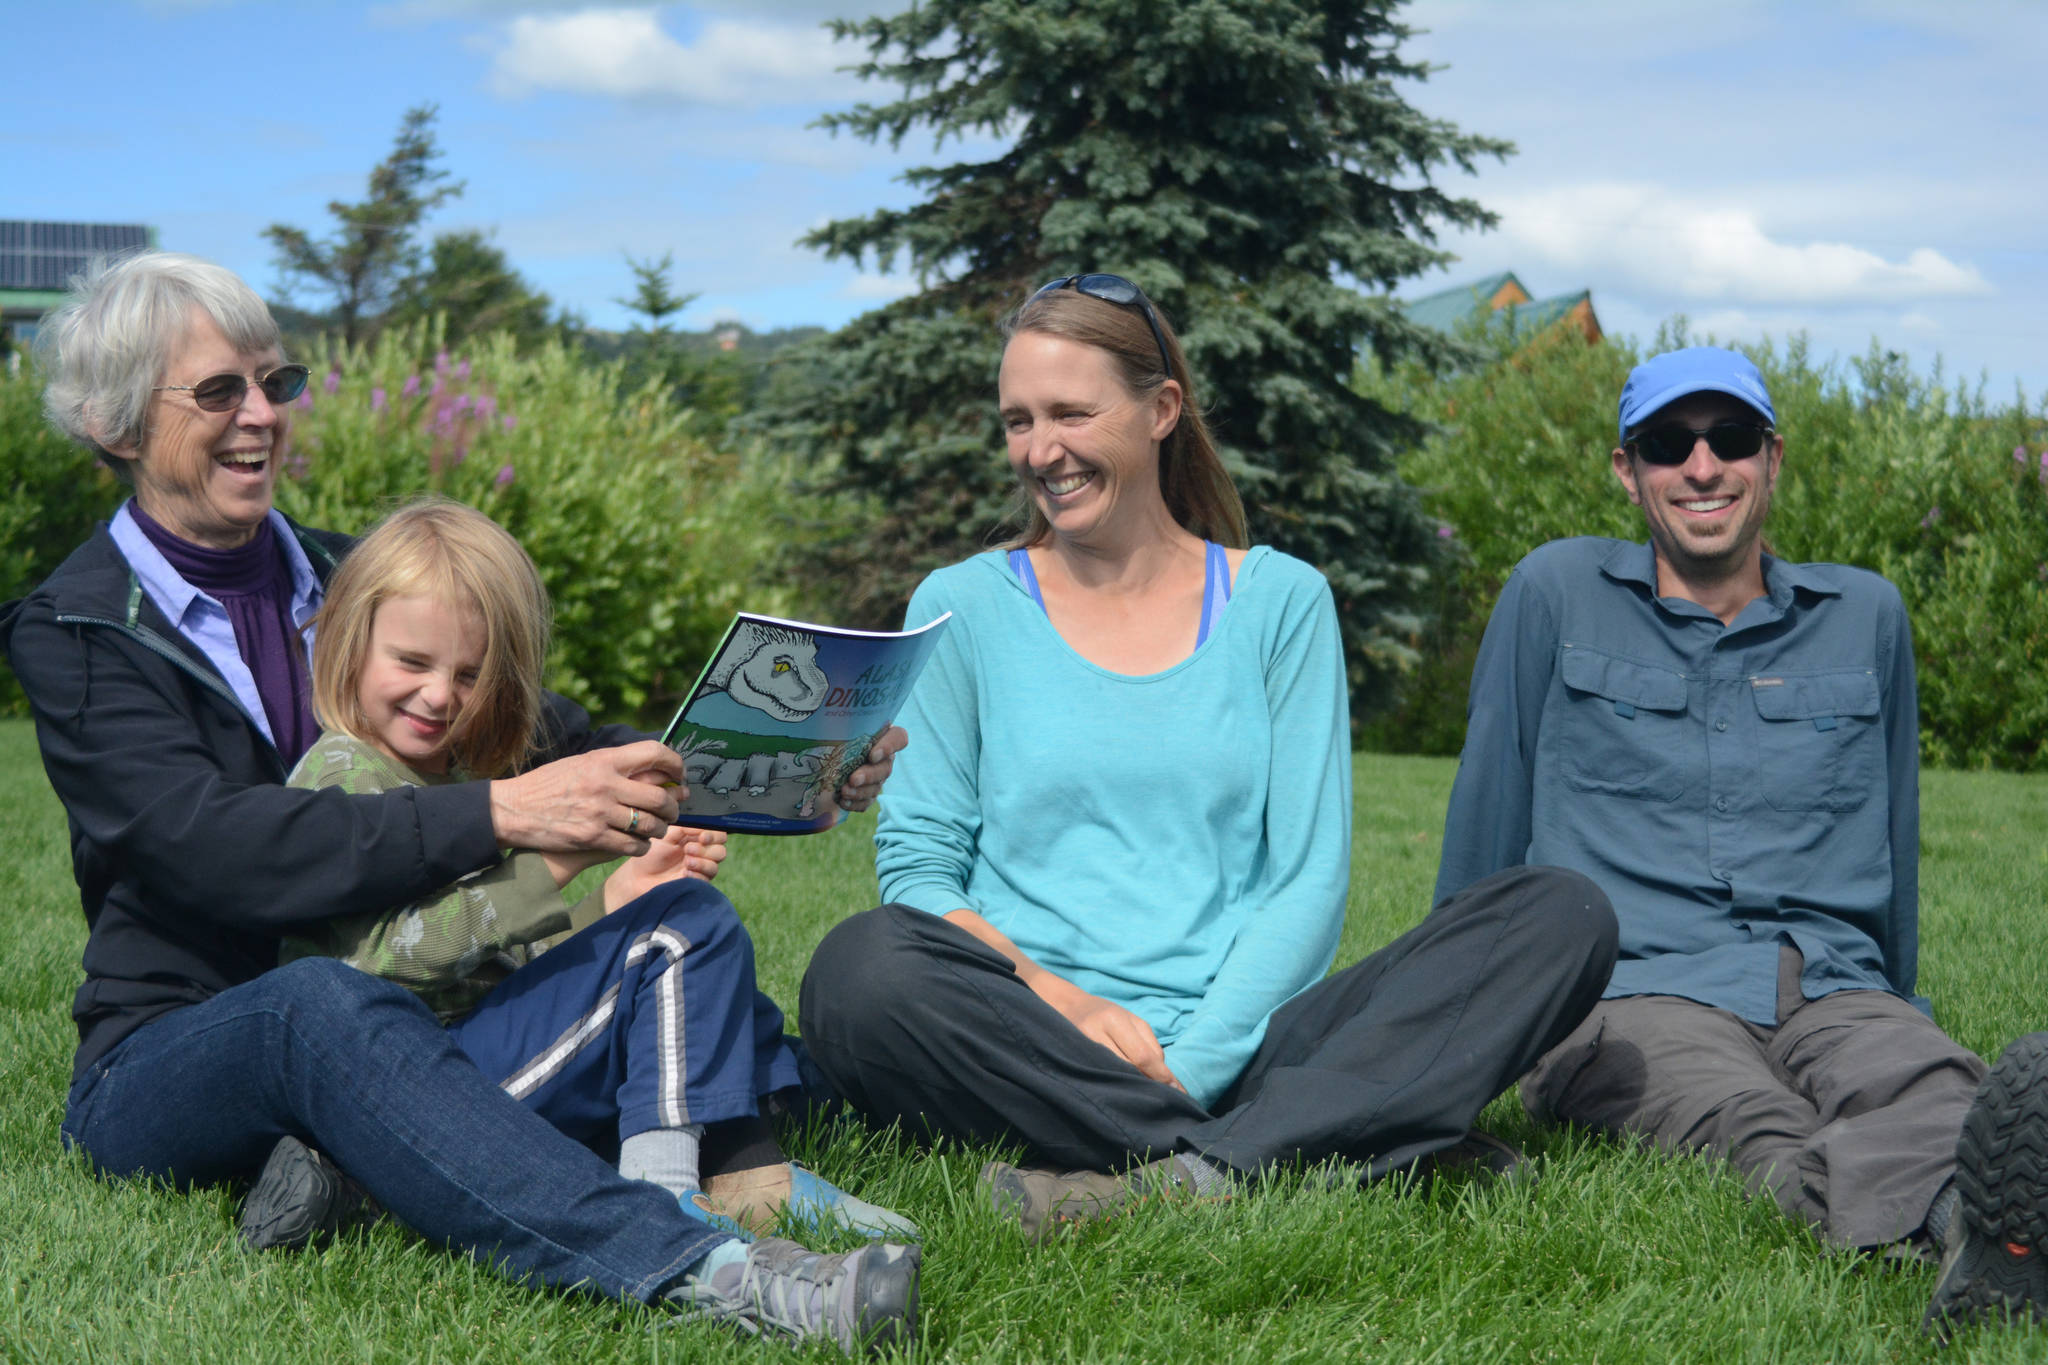 """Janet Klein, left, holds her grandson, Sylas Reising, 4, while she visits with her daughter, Deborah Klein, center, and son-in-law George Reising, right, at Bishop's Beach, Homer, Alaska, on Aug. 9, 2018. Not shown is Kai Reising, 6. Silas and Kai were the inspiration for the Klein's """"color and learn"""" book, """"Alaska's Dinosaurs and Other Cretaceous Creatures."""""""